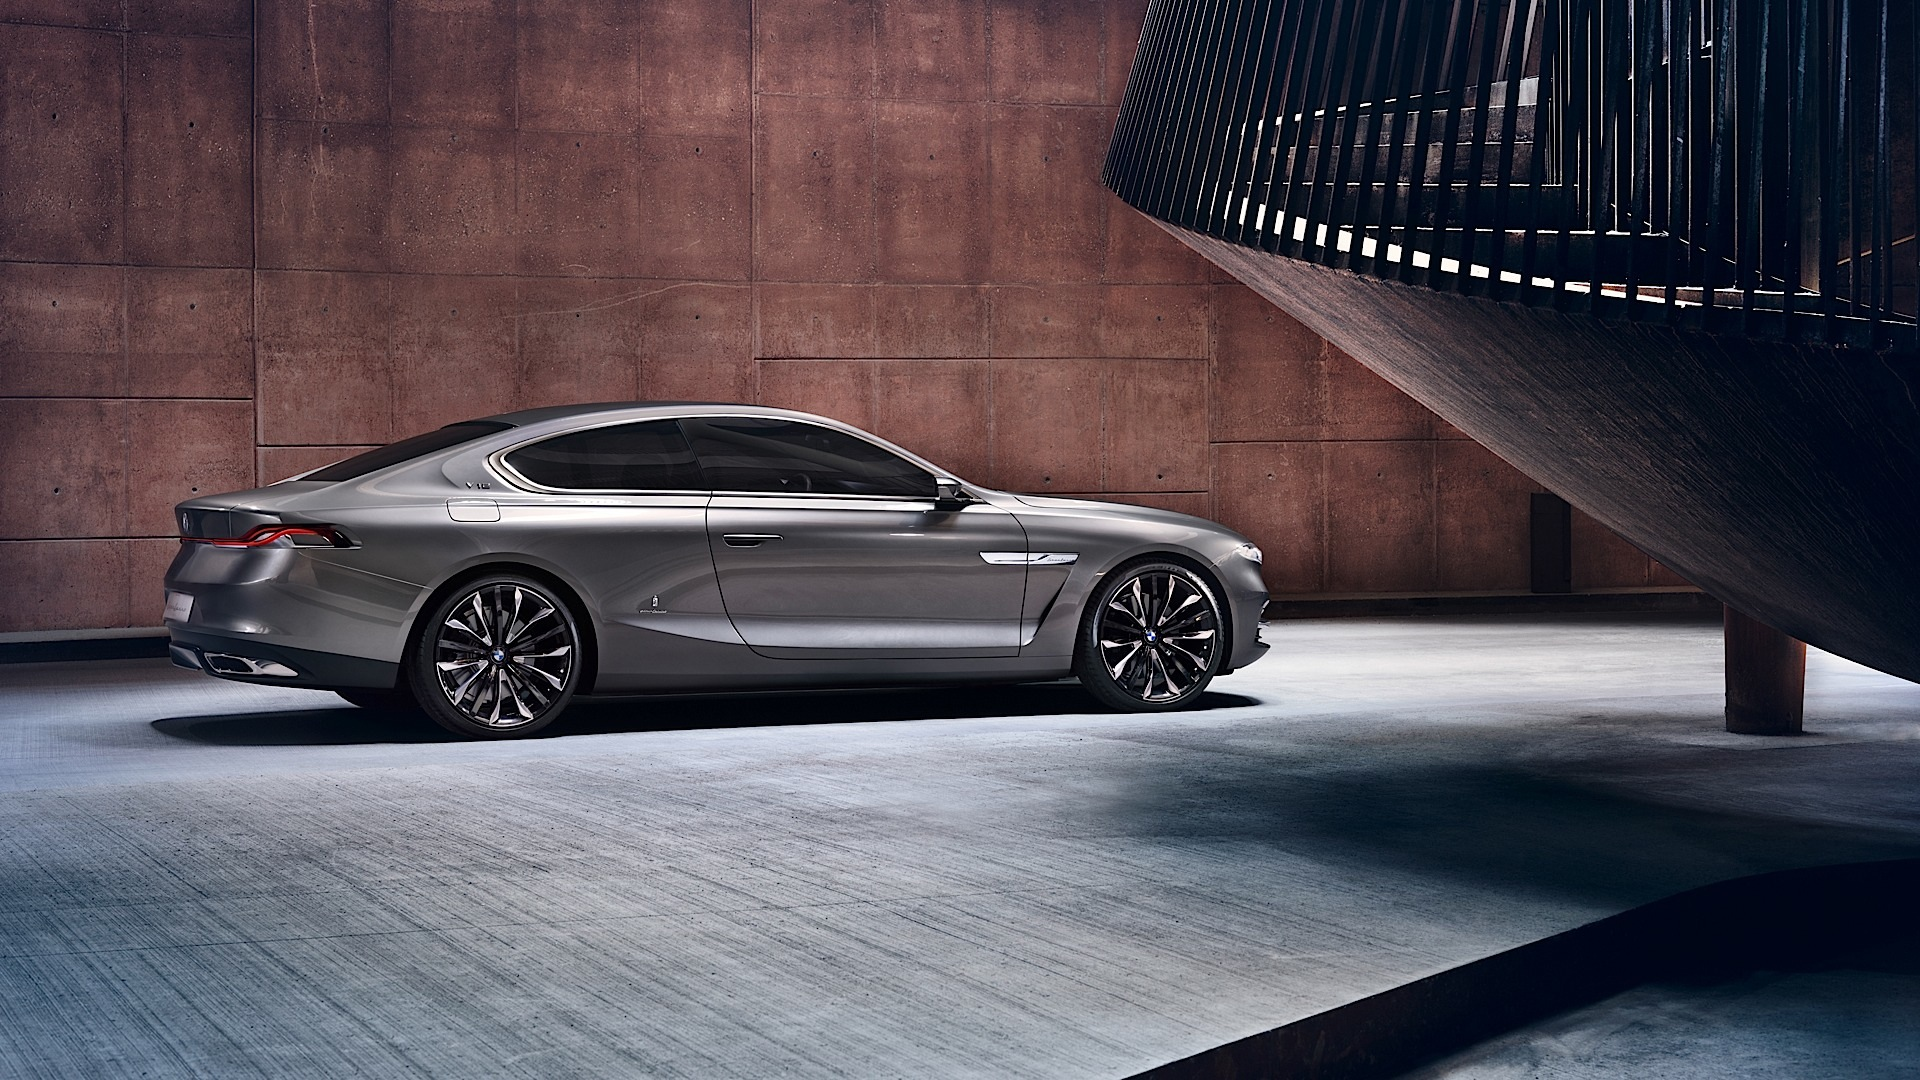 Bmw Pininfarina Gran Lusso Coupe Breaks Cover Autoevolution HD Wallpapers Download free images and photos [musssic.tk]